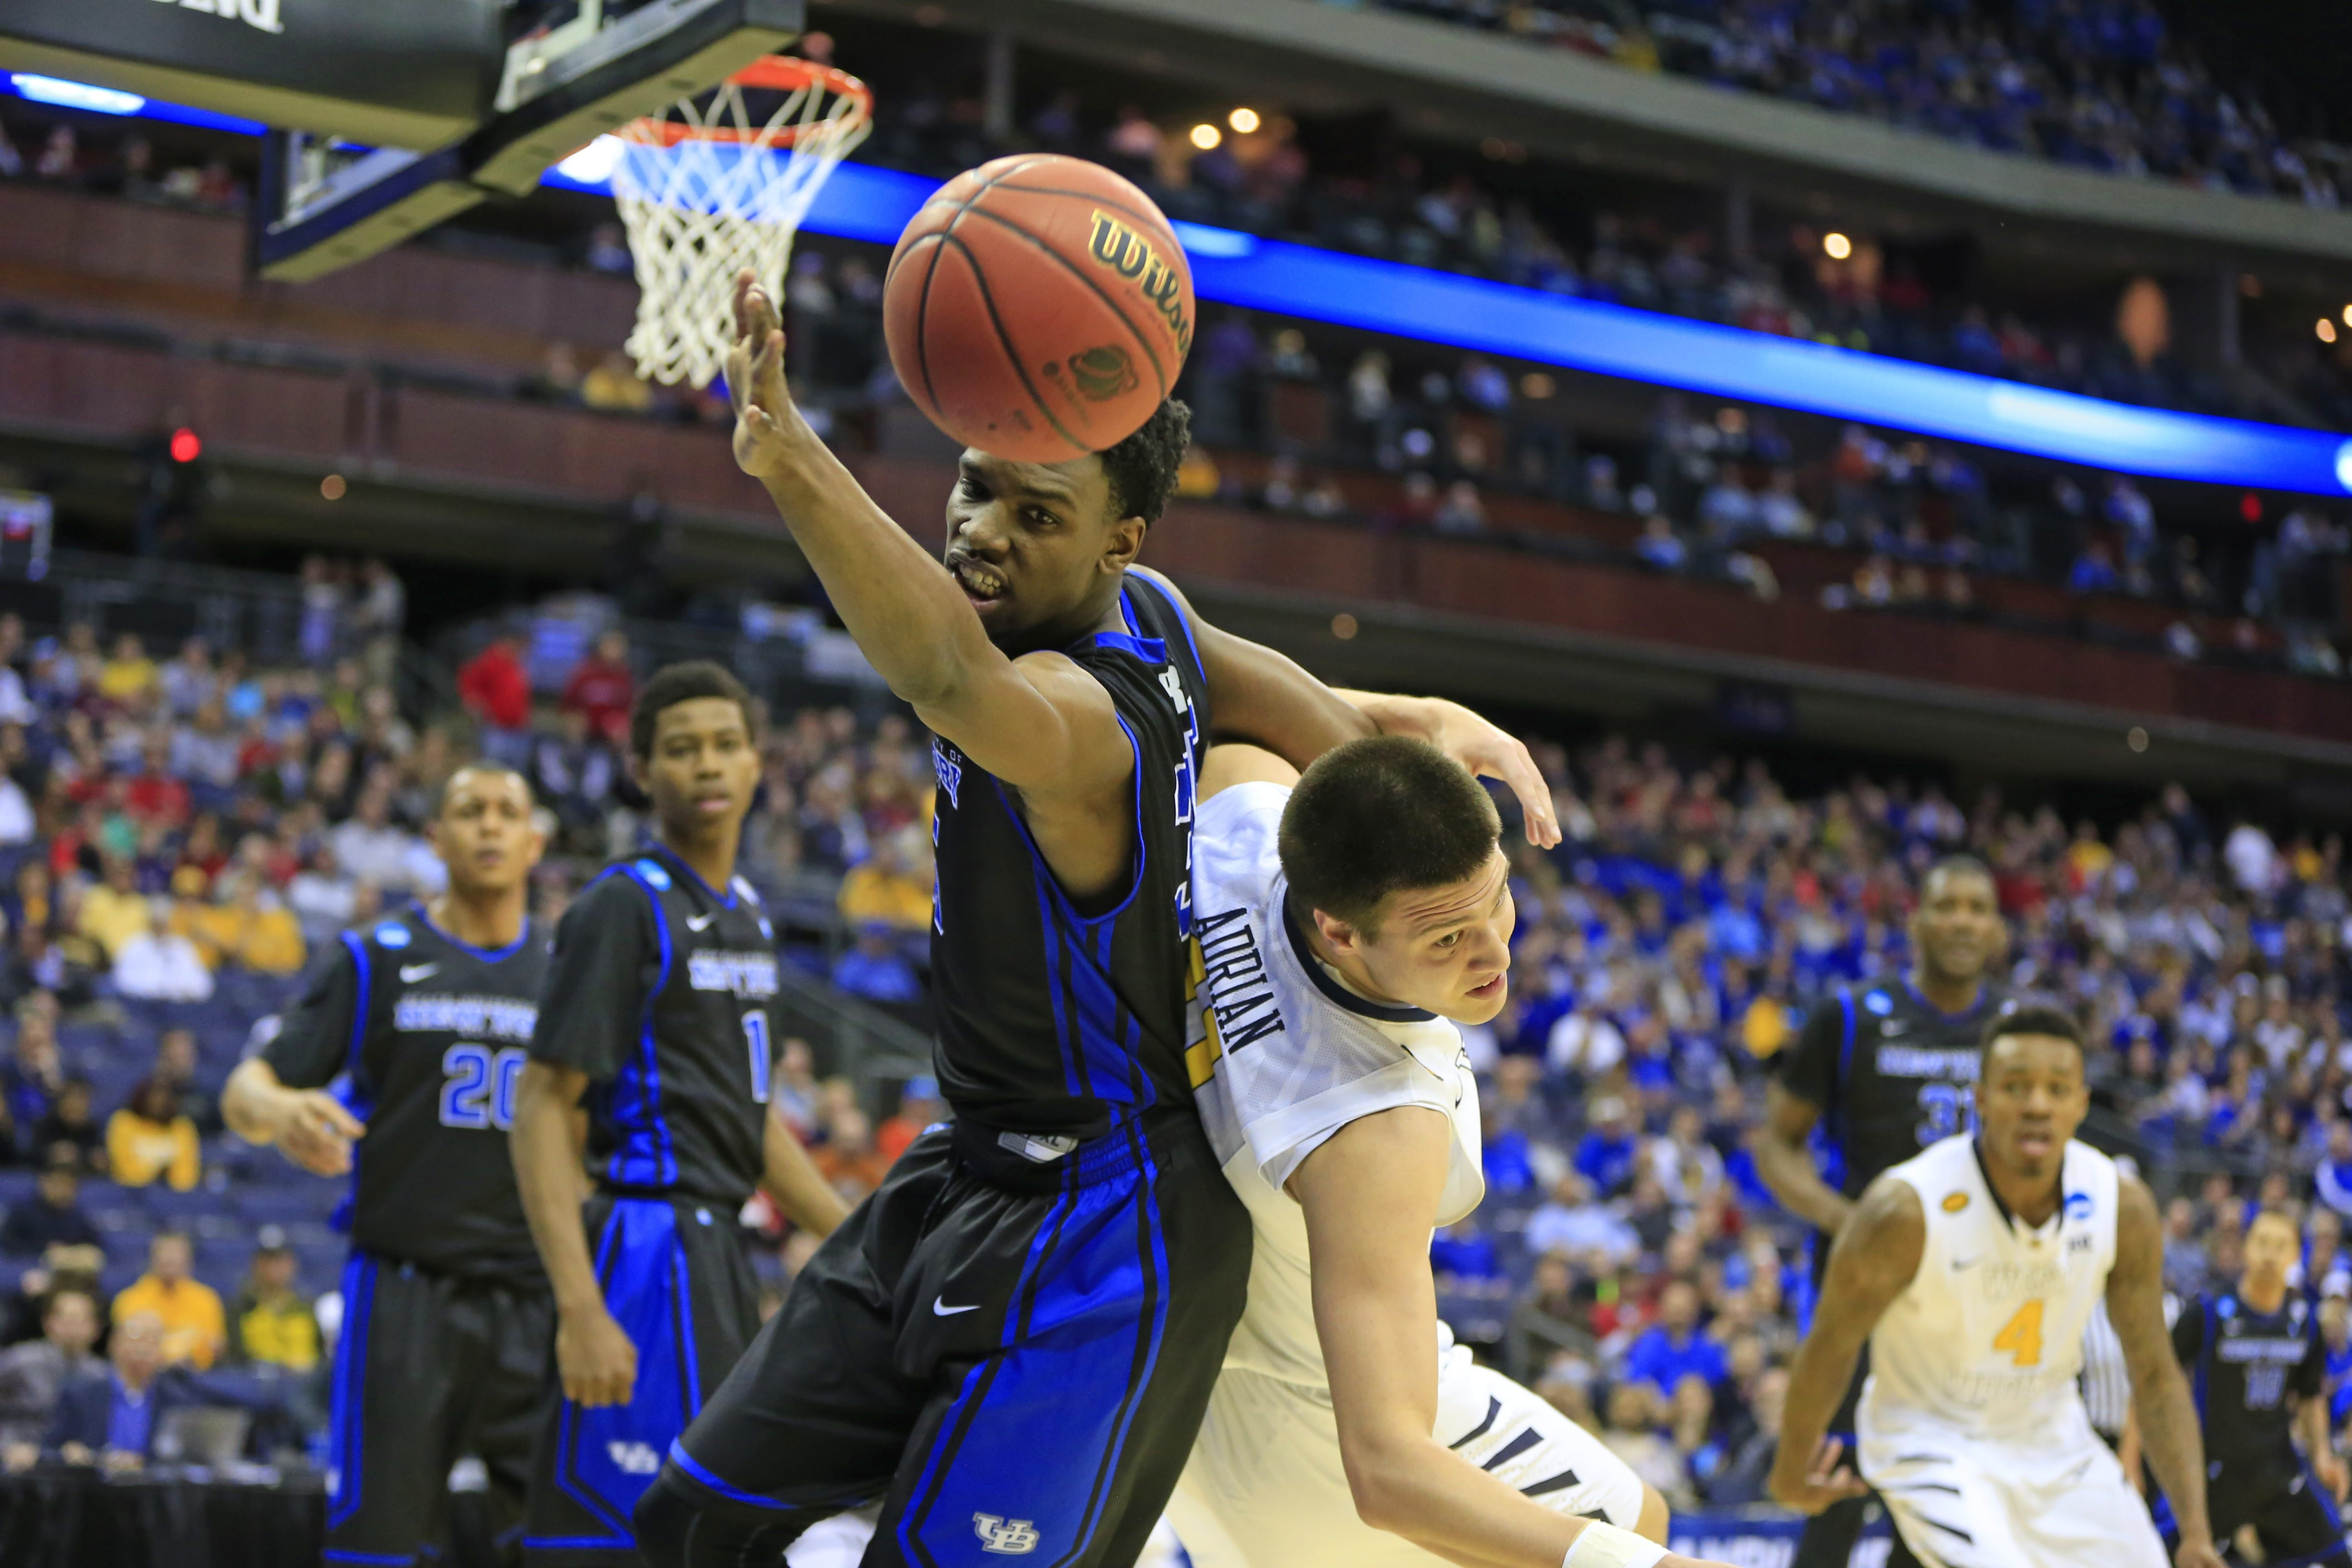 Senior Xavier Ford and UB found victory a hair beyond their fingertips in Friday's Midwest Regional loss to West Virginia.